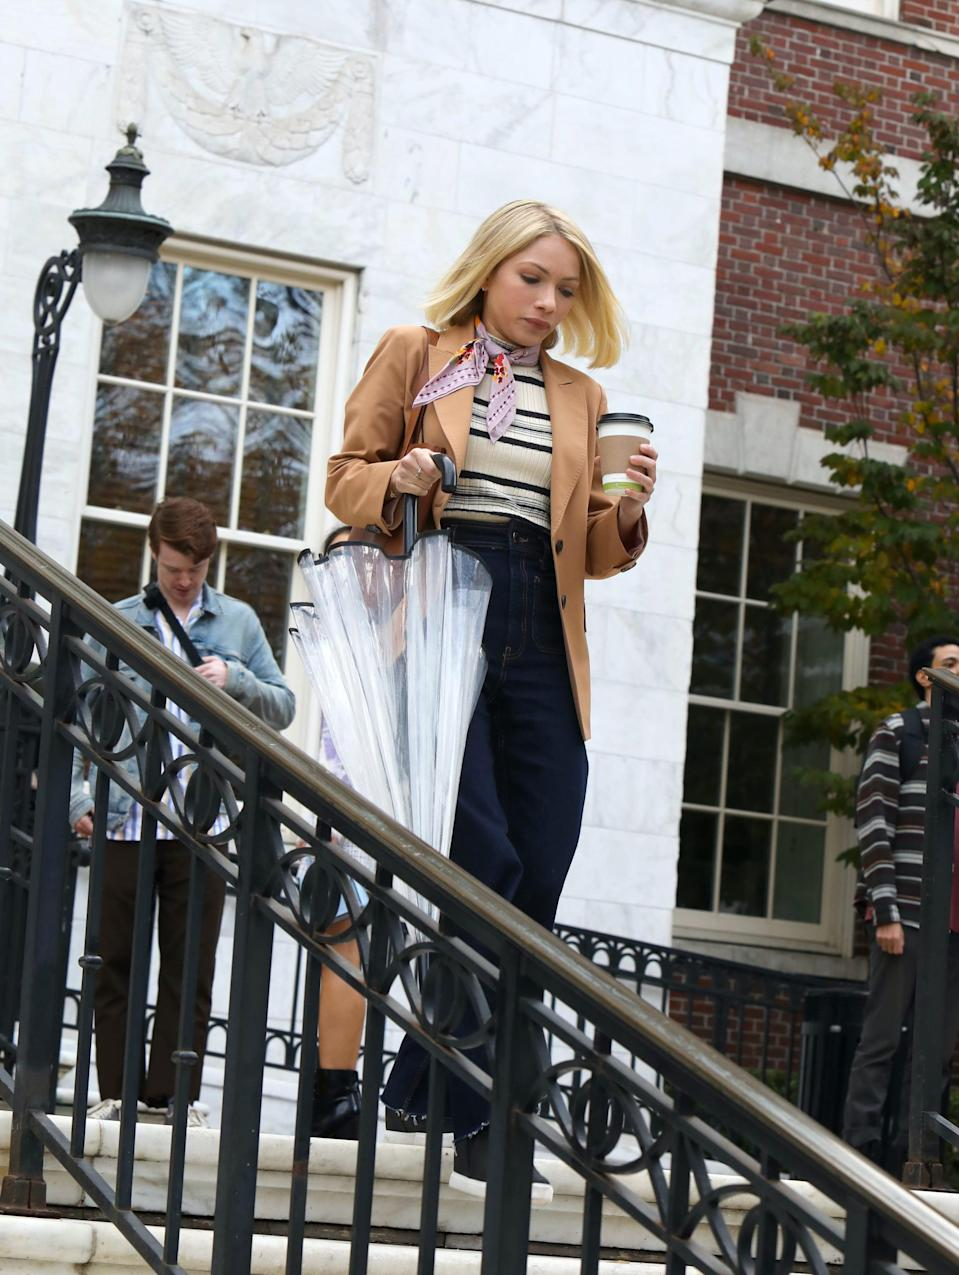 """<p>That being said, you'll probably notice there are a few homages to the cast's original outfits from the opening scenes of the reboot. For example, Tavi Gevinson, who plays Kate, replicates an outfit made famous by <a href=""""https://www.popsugar.com/fashion/gossip-girl-tavi-gevinson-serena-van-der-woodsen-outfit-48388103"""" class=""""link rapid-noclick-resp"""" rel=""""nofollow noopener"""" target=""""_blank"""" data-ylk=""""slk:Blake Lively's Serena in the Gossip Girl pilot"""">Blake Lively's Serena in the <strong>Gossip Girl</strong> pilot</a>. She wears S's iconic tan jacket, striped top, and scarf around her neck, just like Serena does in Grand Central Station when spotted by Dan Humphrey.</p> <p>""""We first see [Tavi's character] paying homage to Serena's first outfit. Here's this teacher coming in, and maybe she knows that she's emulating Serena, who was the It girl. Maybe she thinks it's cool to be dressing like Serena, but it's actually a little bit dated,"""" Eric said.</p>"""